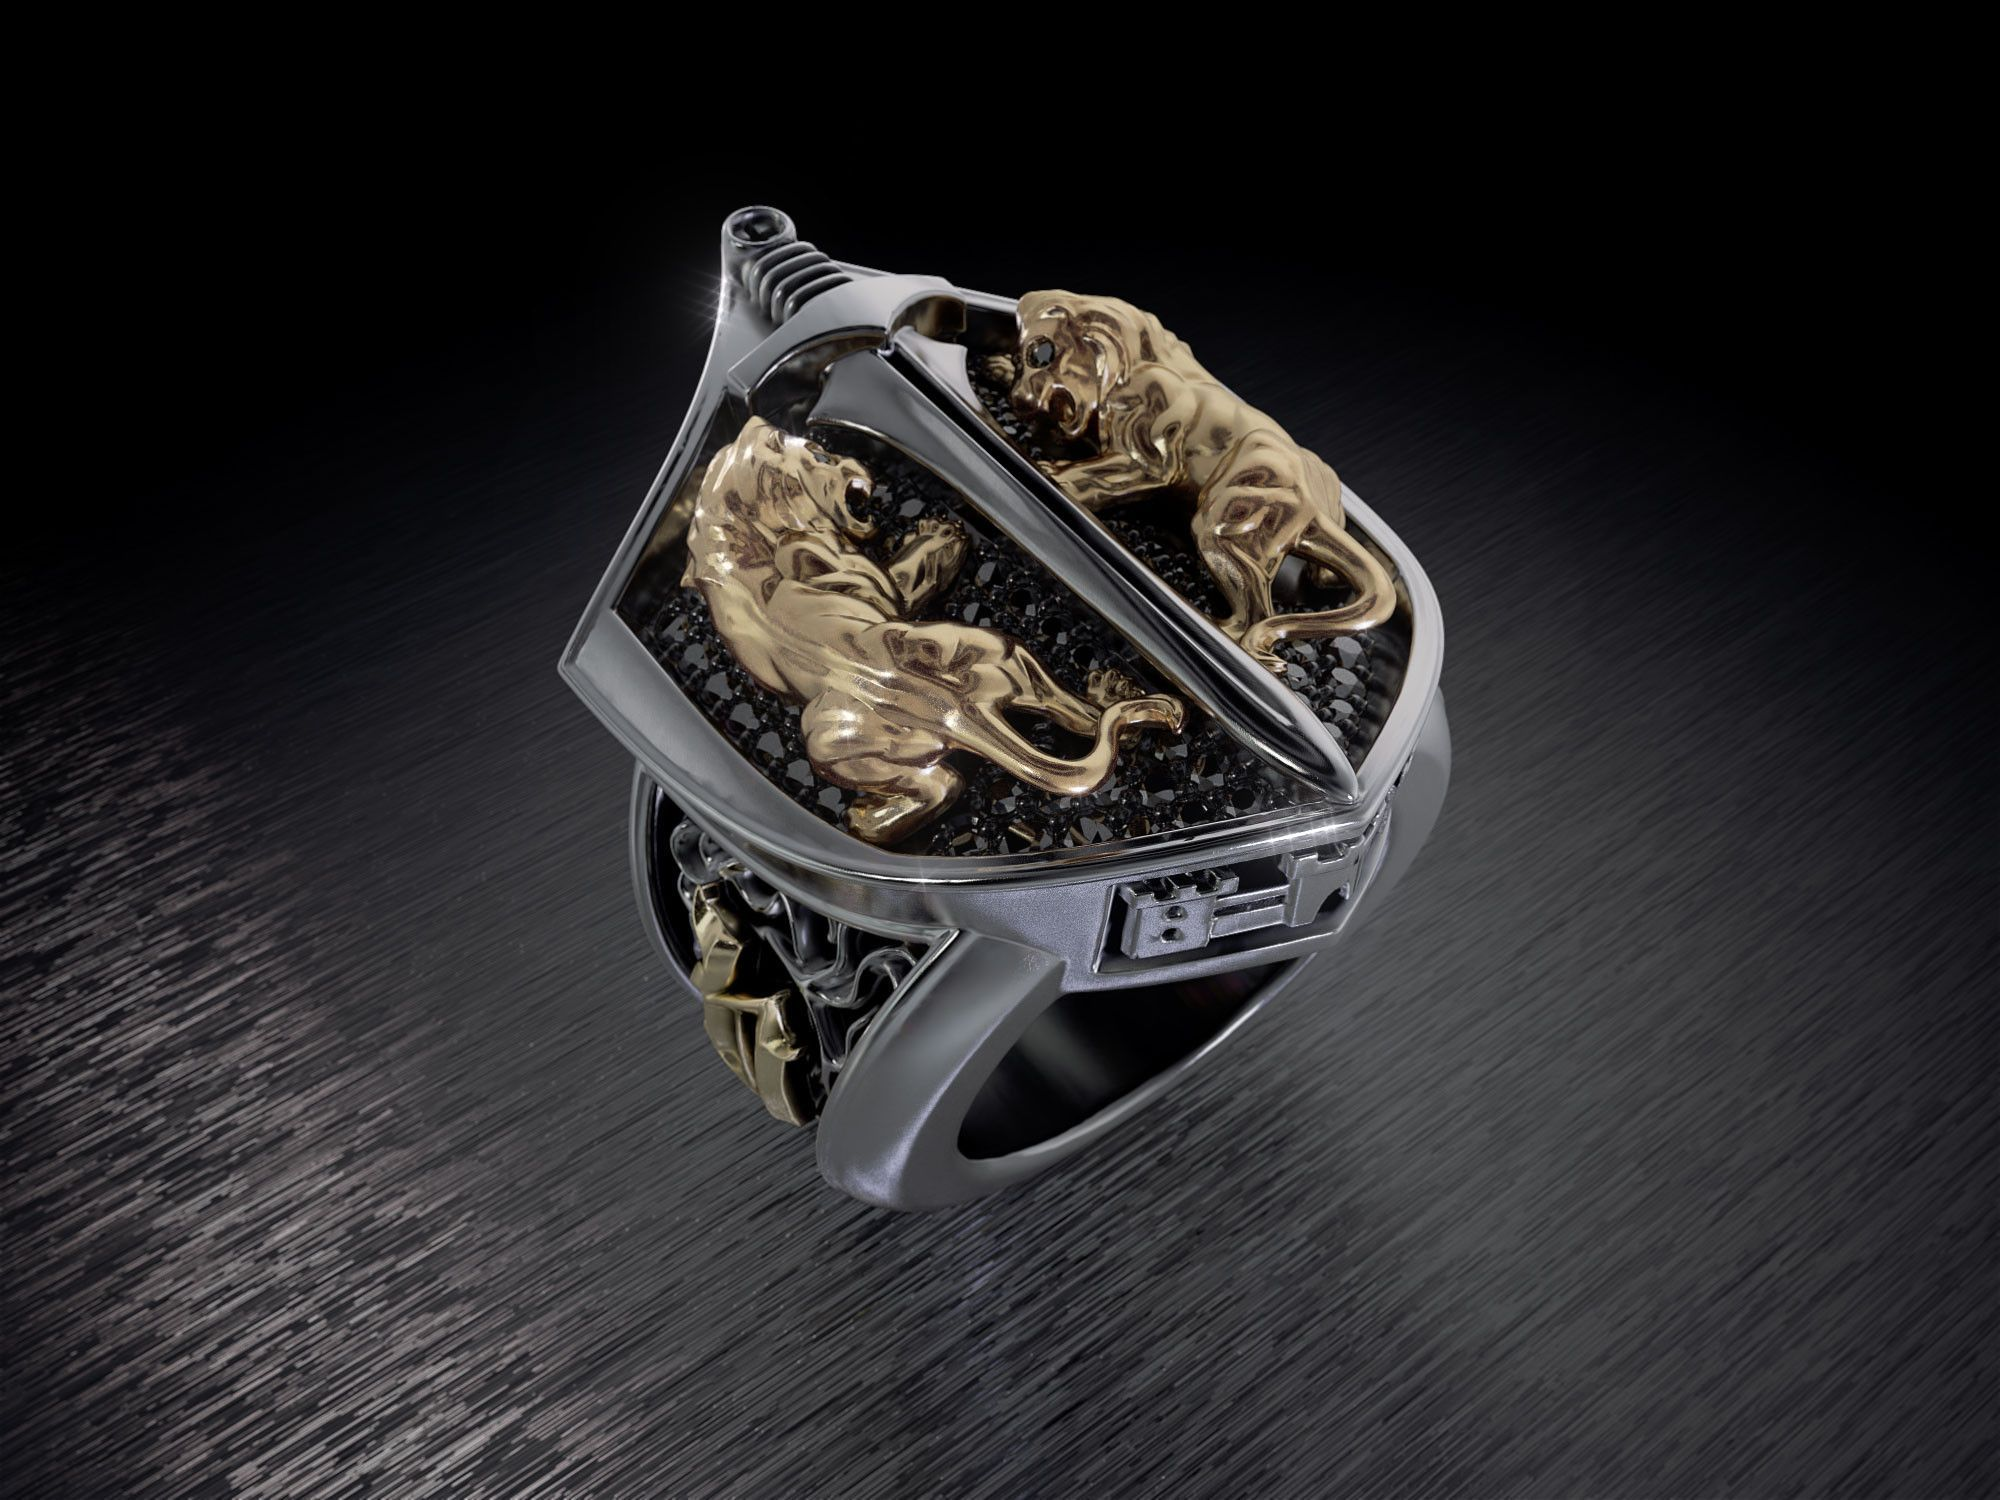 King's Crest in 2020 Cool rings for men, Unique mens